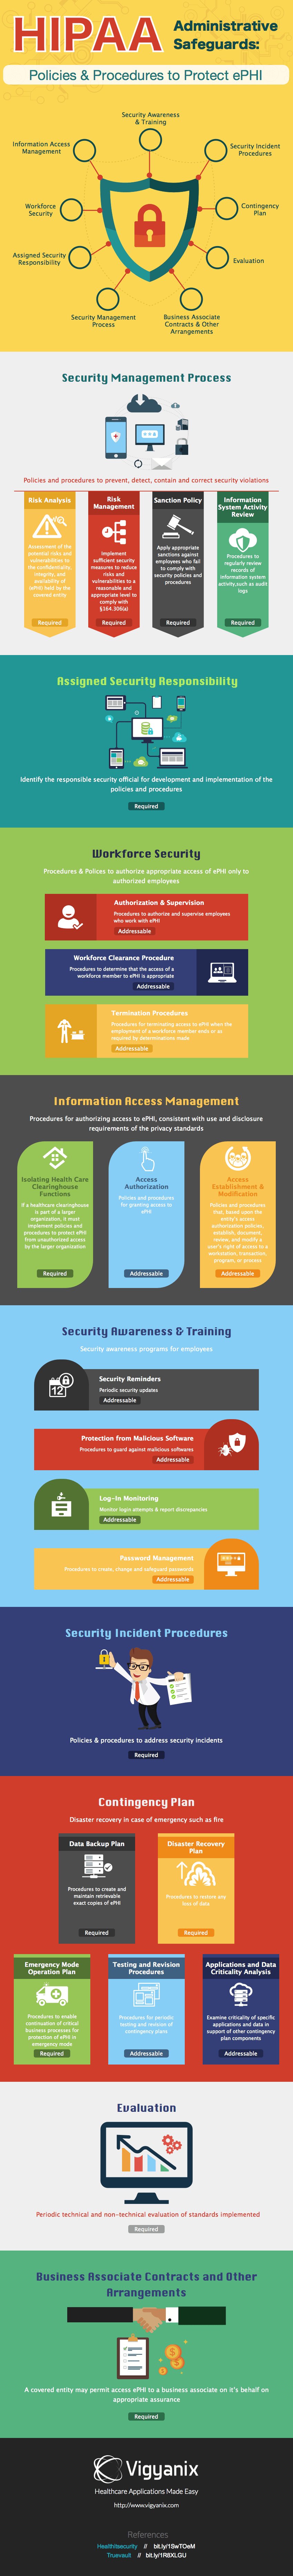 HIPAA security: Administrative safeguards infographic